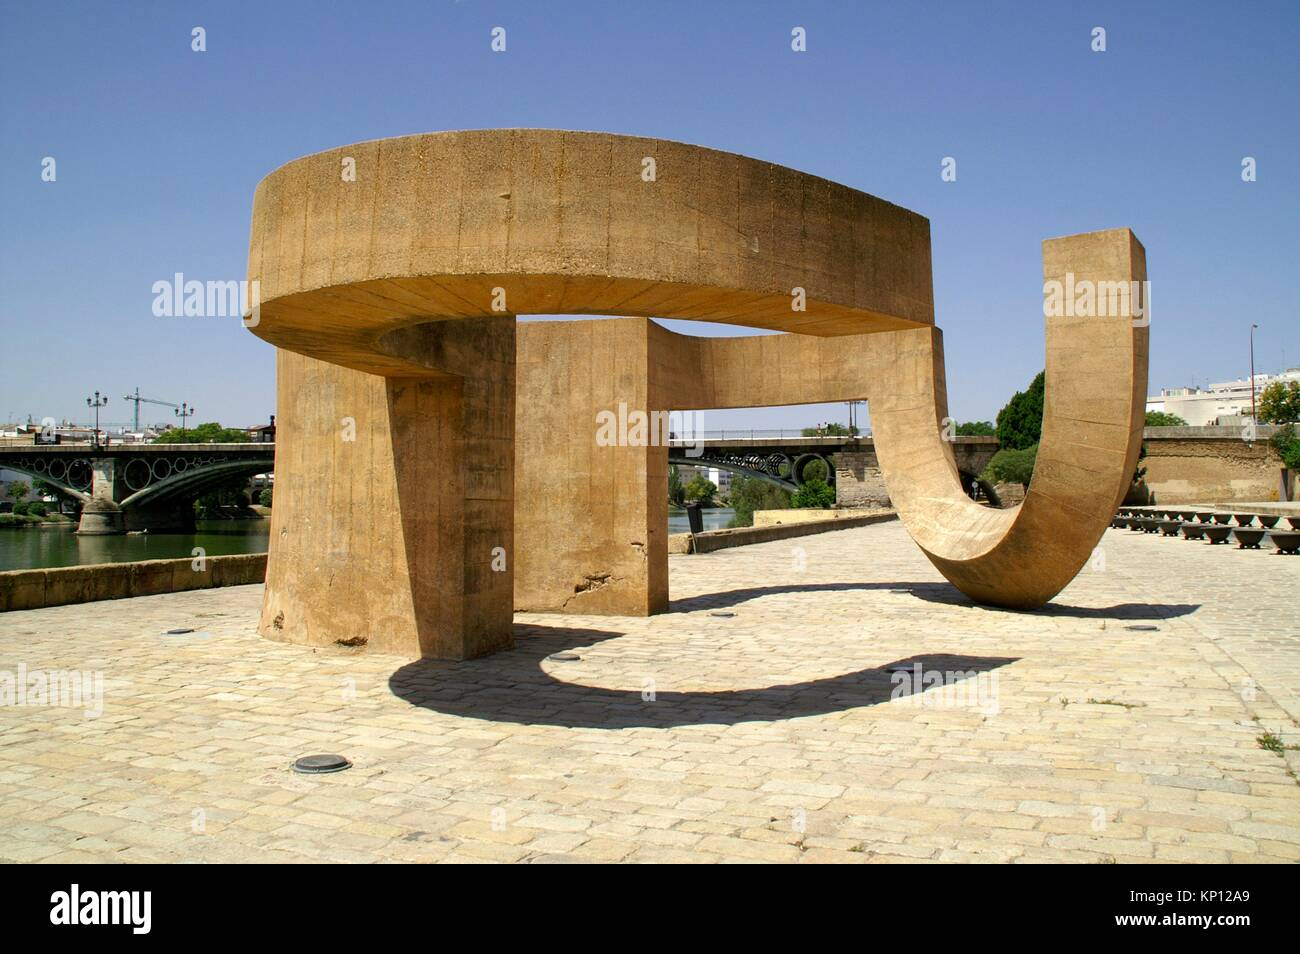 Sevilla (Spain). Monument to the Tolerance of Eduardo Chillida next to the river Guadalquivir in the city of Seville. - Stock Image